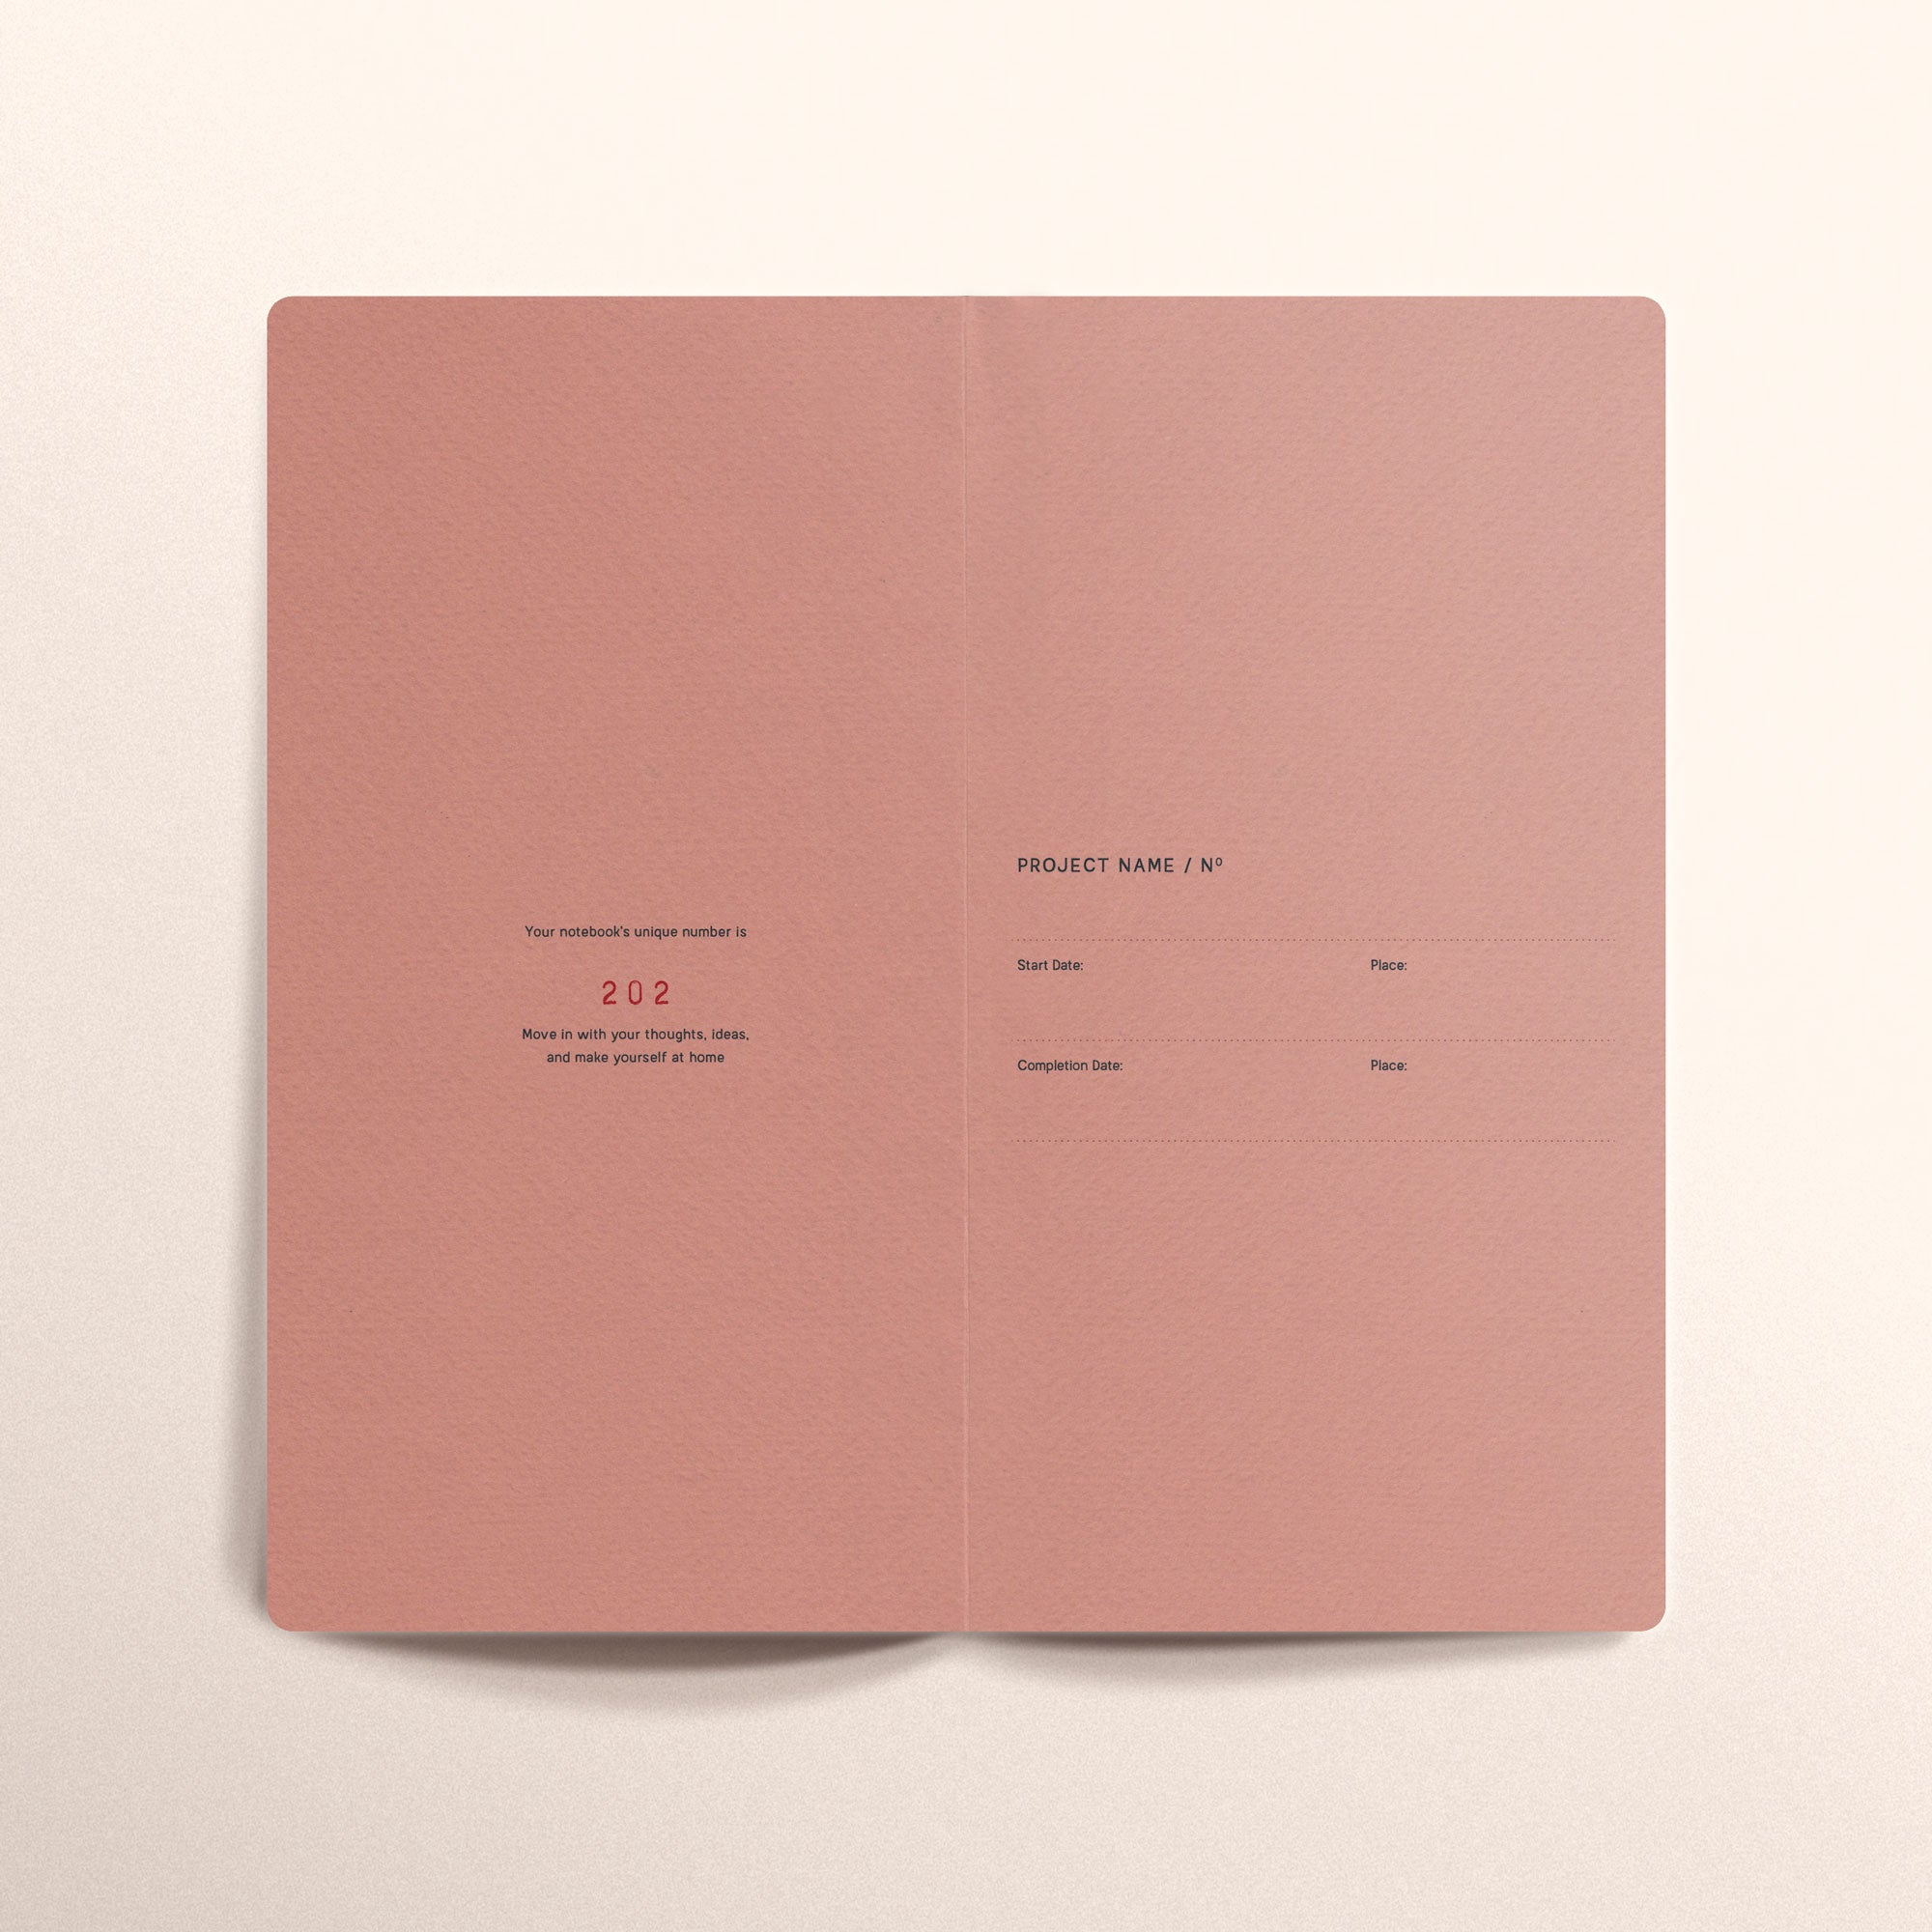 N.308 (RULED) Notebook. Slim / Traveler's notebook size [R]